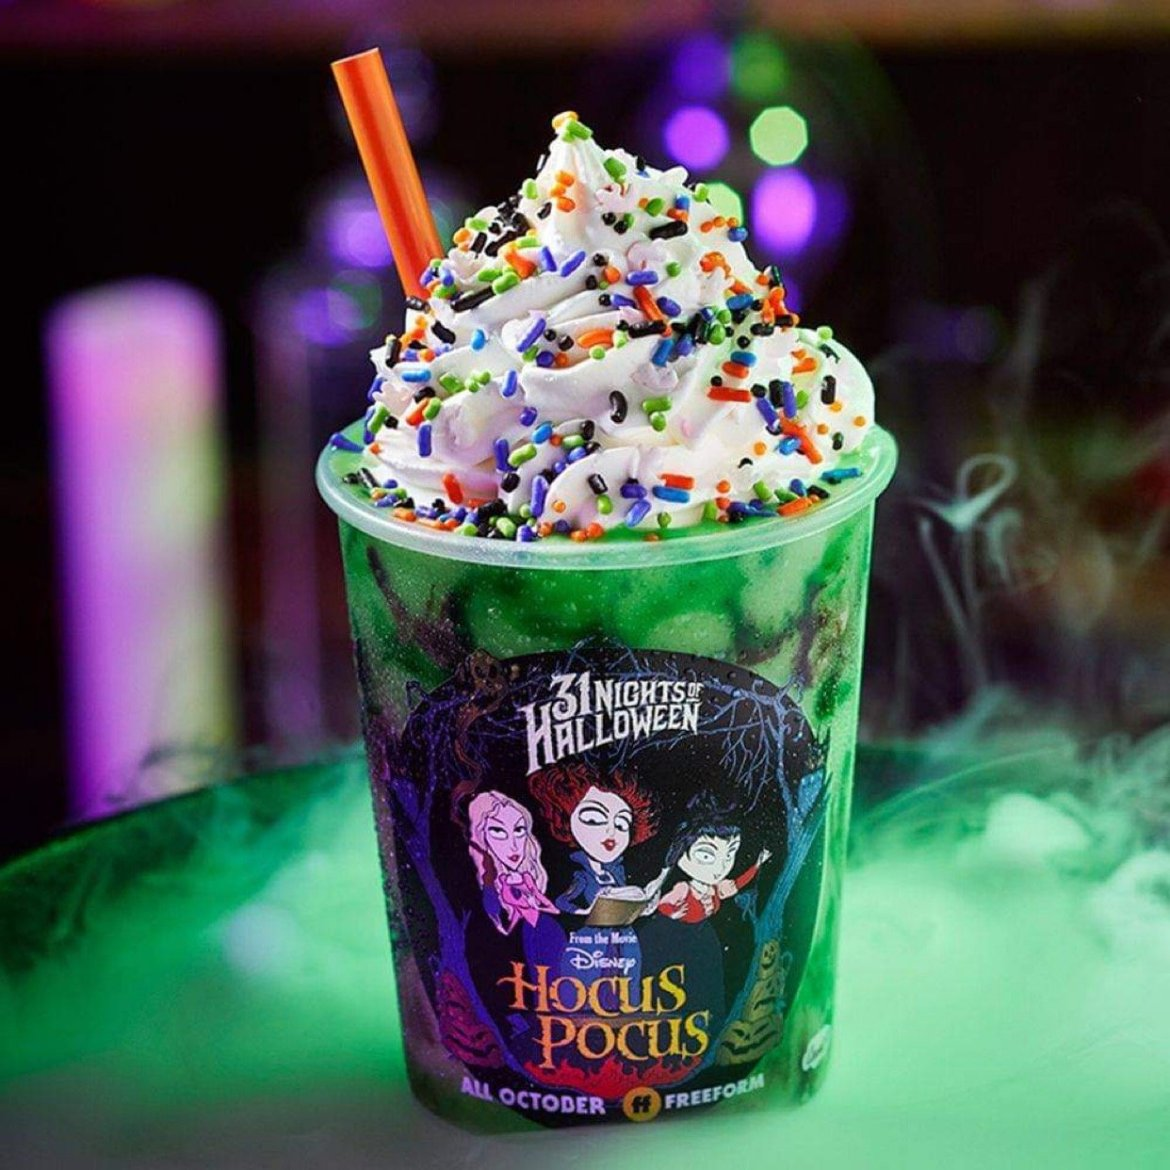 Hocus Pocus Shake & Limited Edition Cup at Carvel